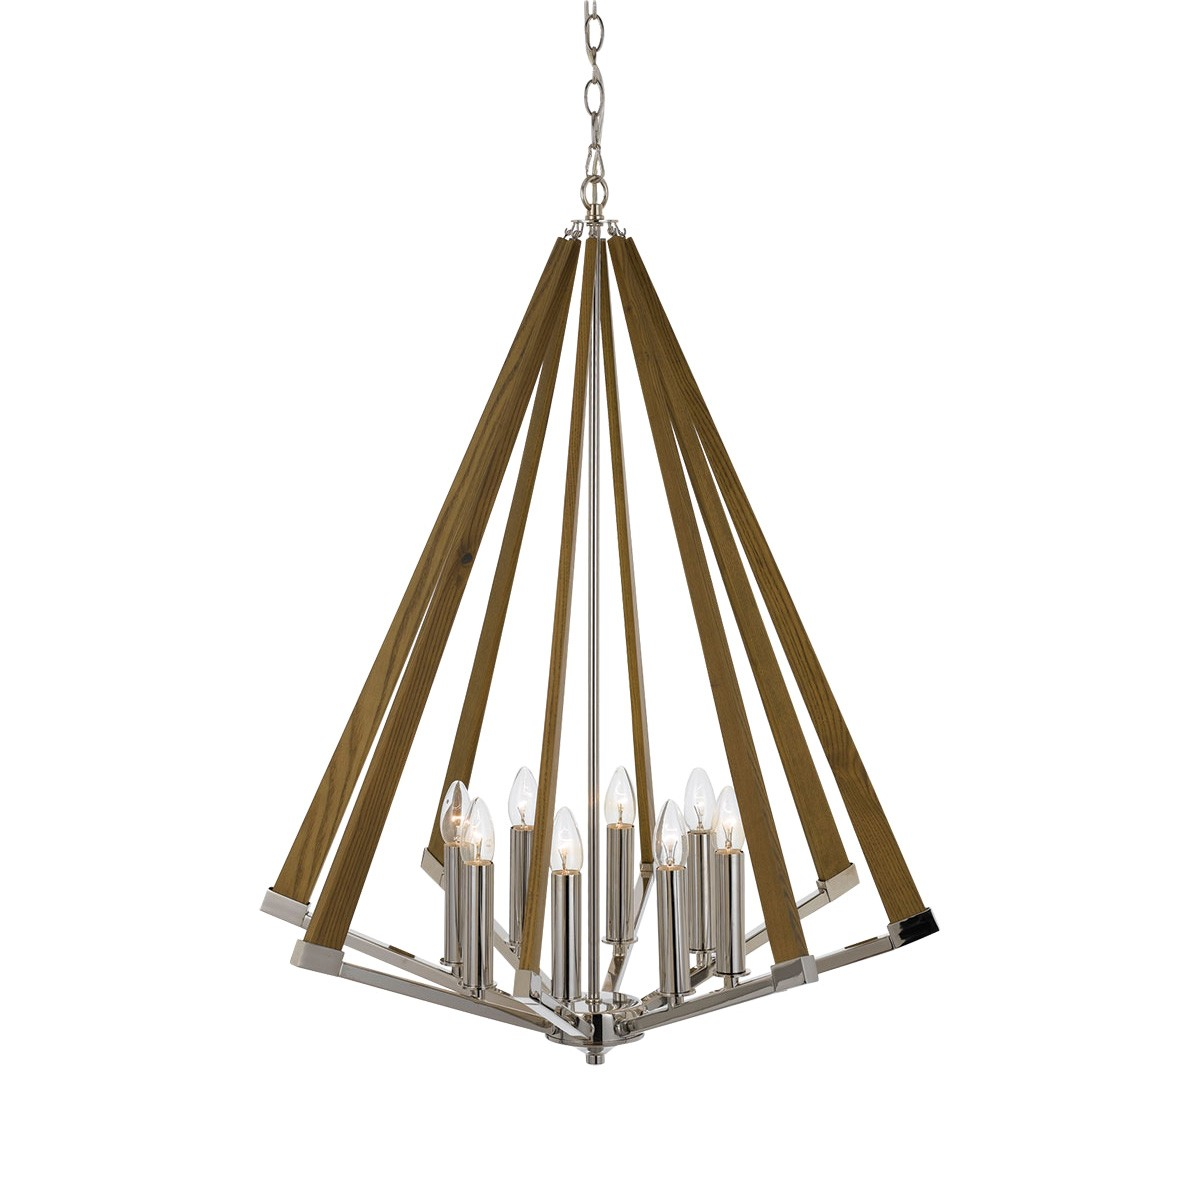 Graf Metal & Ashwood Pendant Light, Large